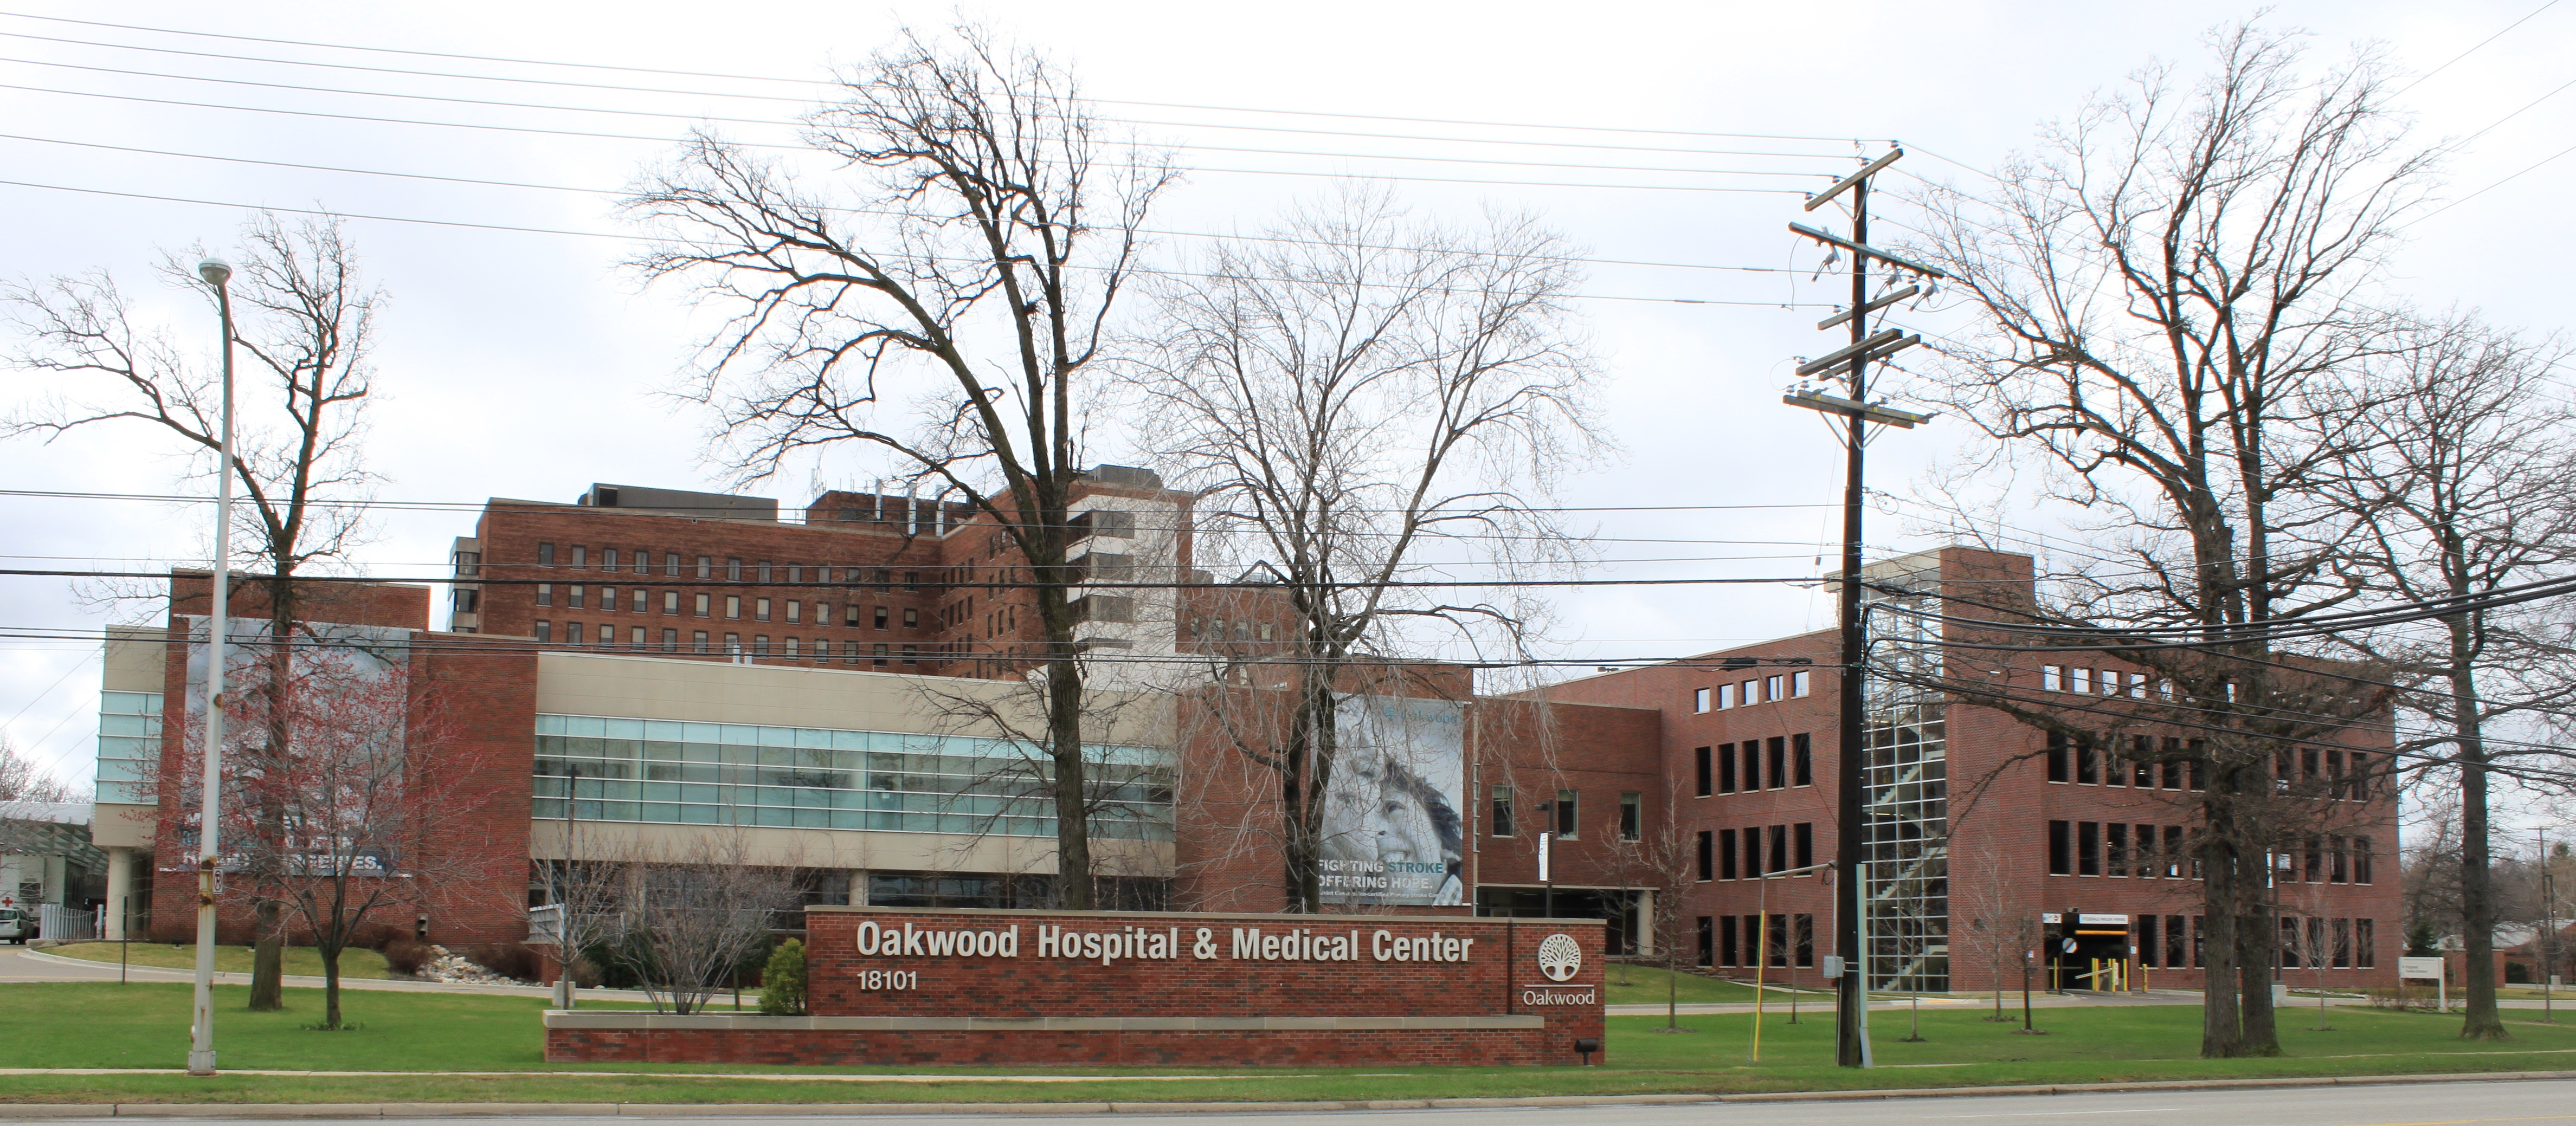 File:Oakwood Hospital and Medical Center Dearborn Michigan